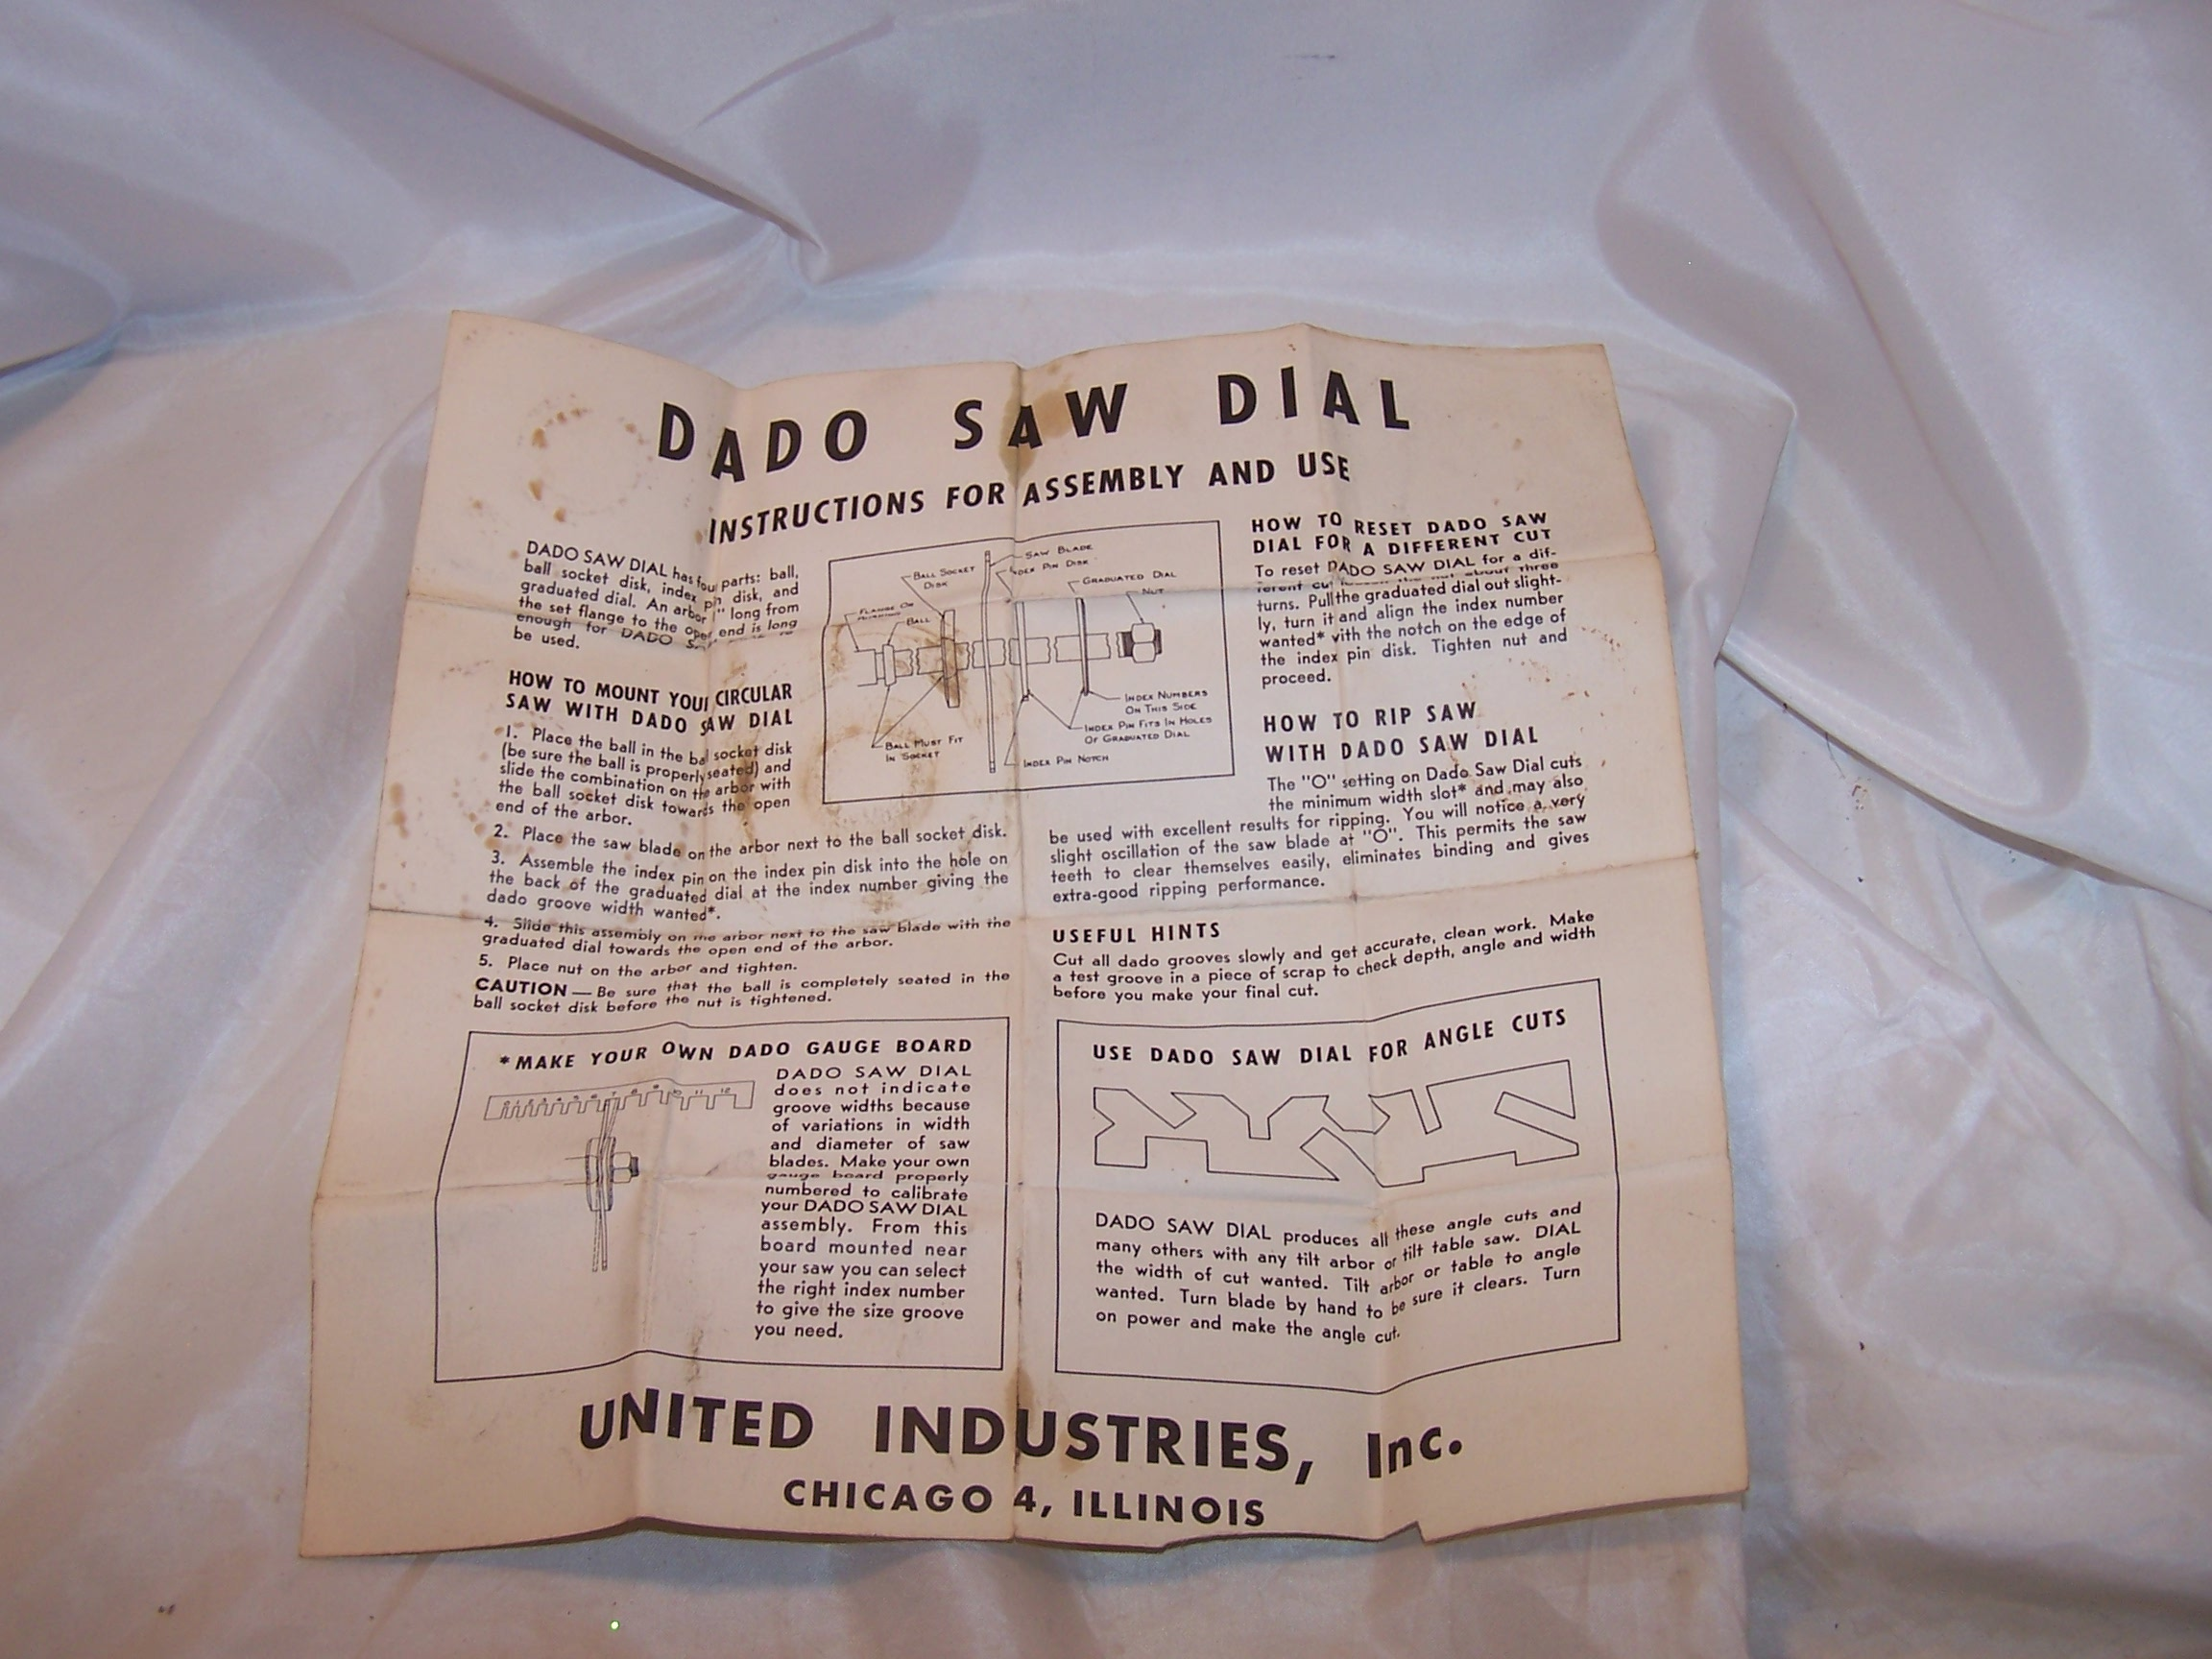 Image 5 of Dado Saw Dial, Vintage, United Industries Inc, Chicago